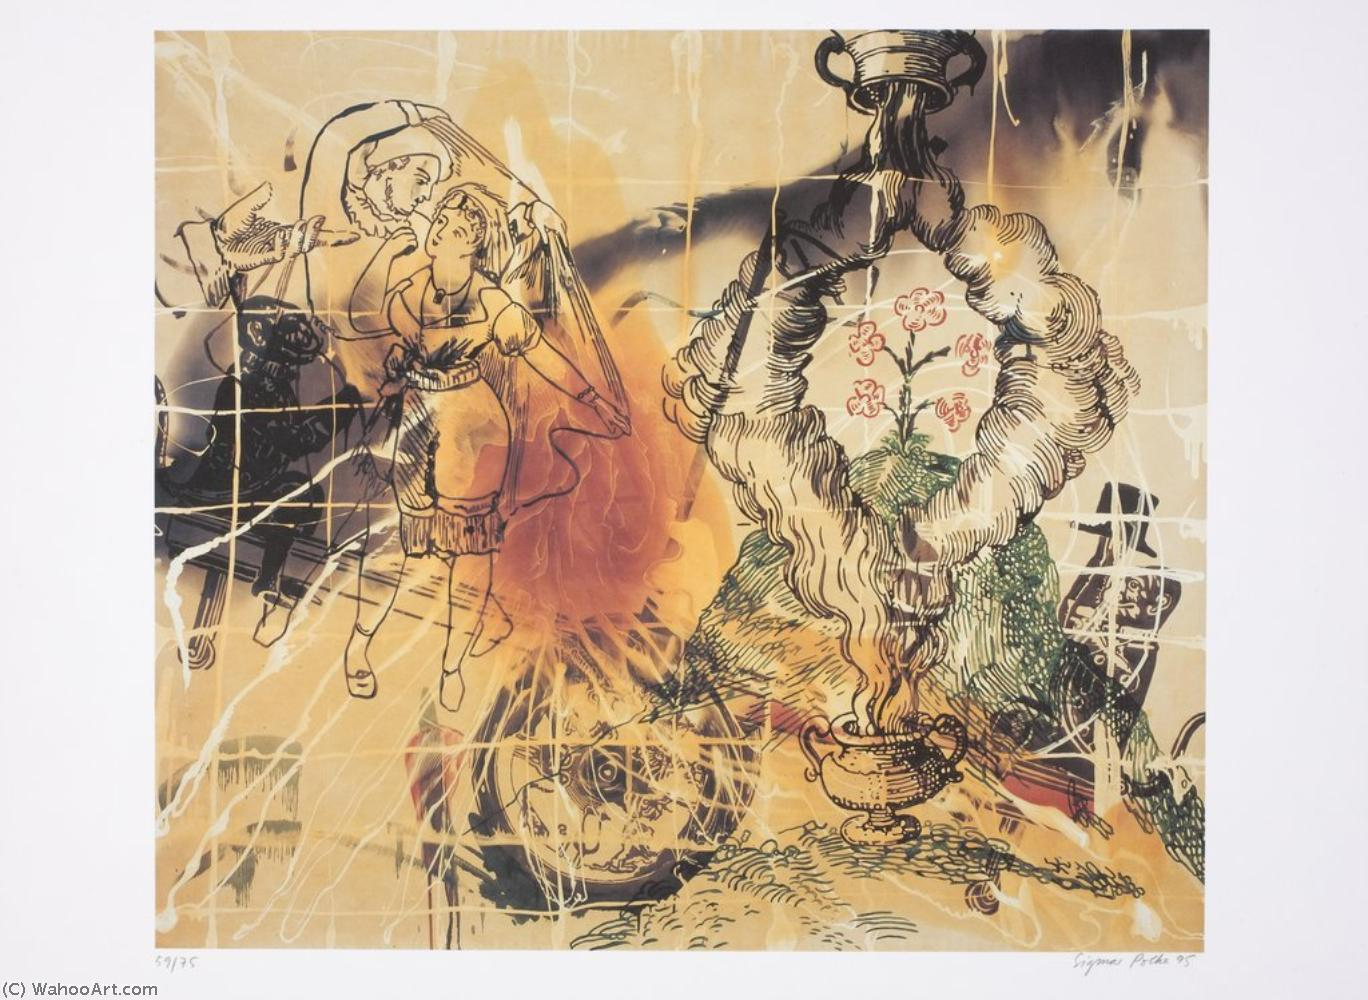 Buy Museum Art Reproductions Pop Art : Affenschaukel by Sigmar Polke | BuyPopArt.com